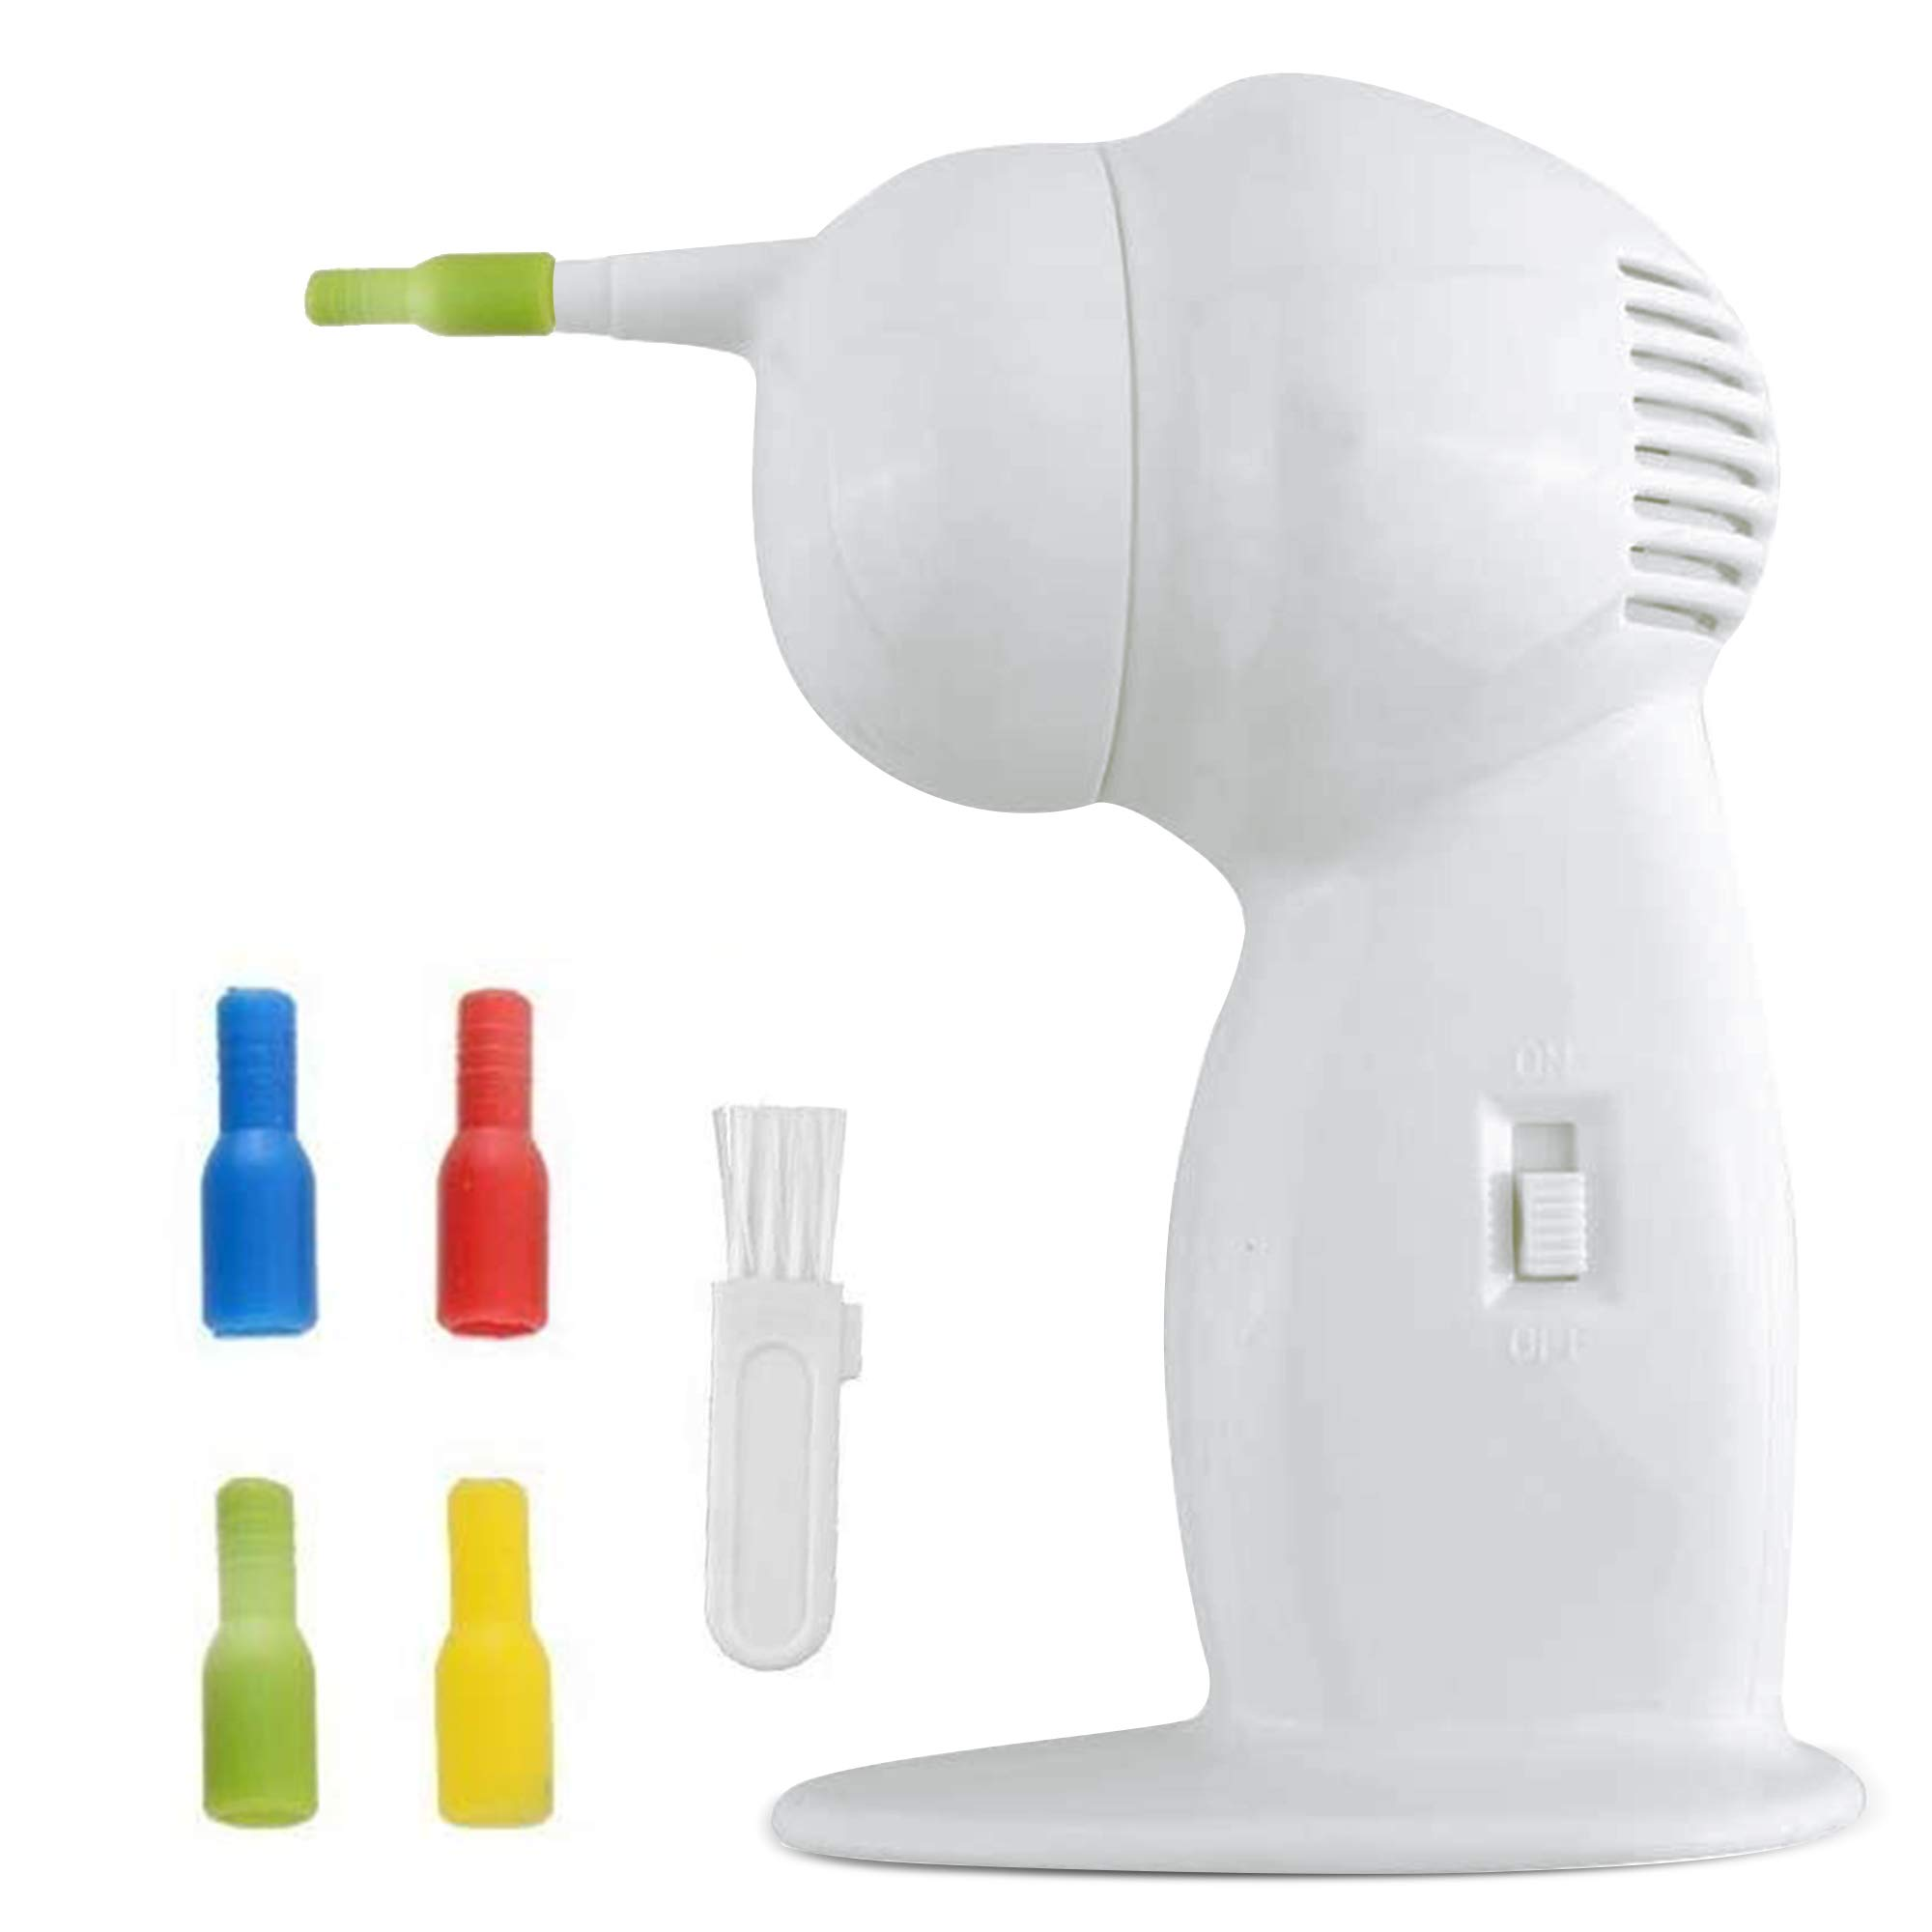 Ear Wax Vacuum, Ear Wax Removal, Ear Wax Suction, Safe and Effective Ear Cleaner for Adults & 5+ Kids